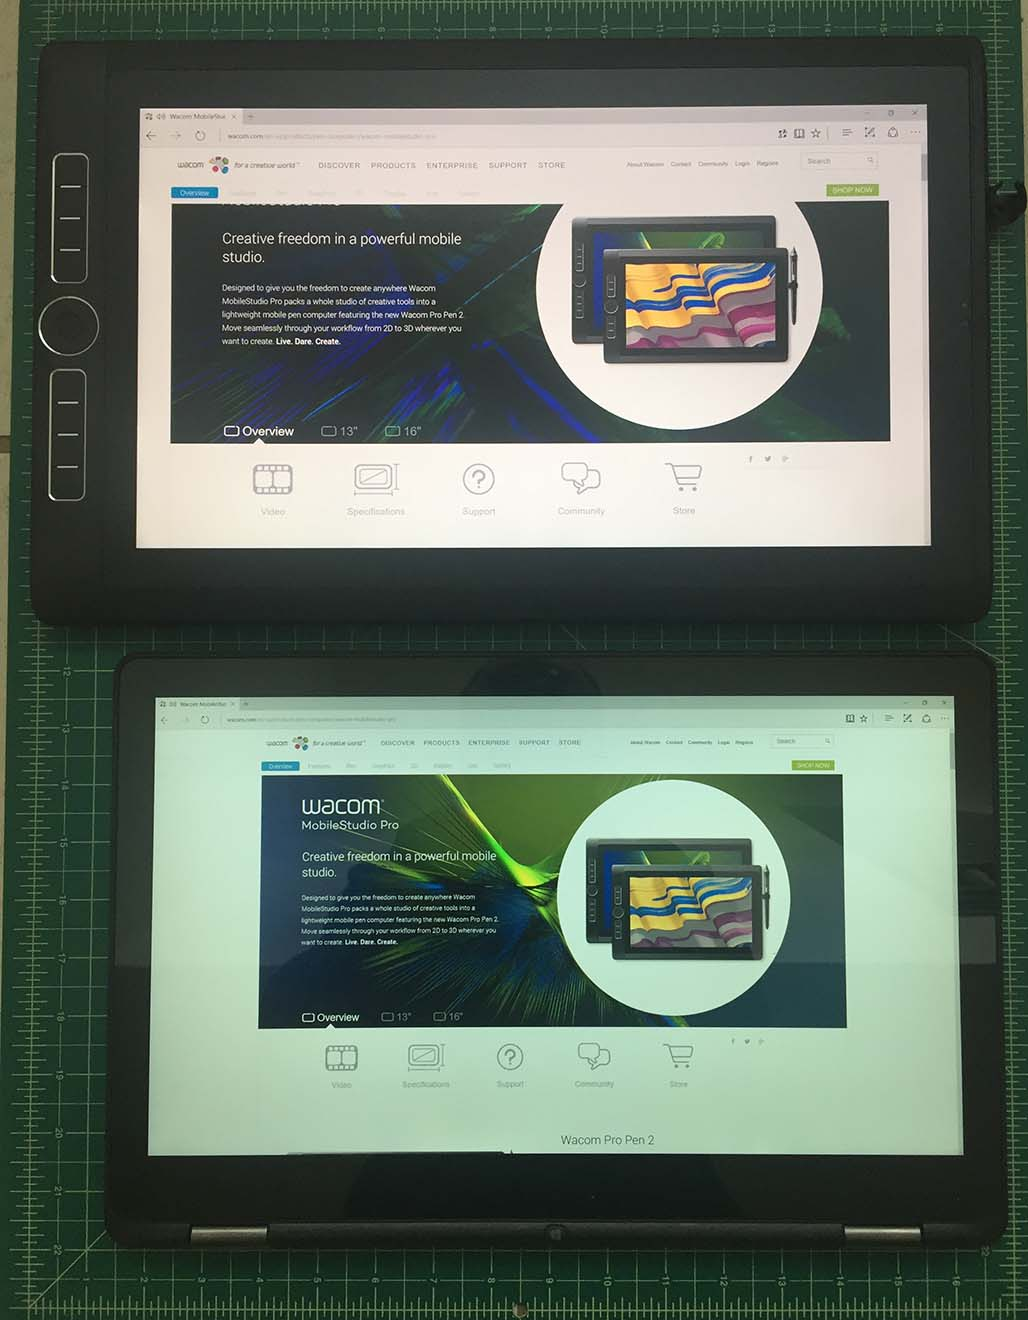 The Dell Inspiron 7568 (above bottom) also has a 15.6 inch screen, but the MobileStudio Pro's ExpressKeys make it a little more awkward to manipulate on a lap.